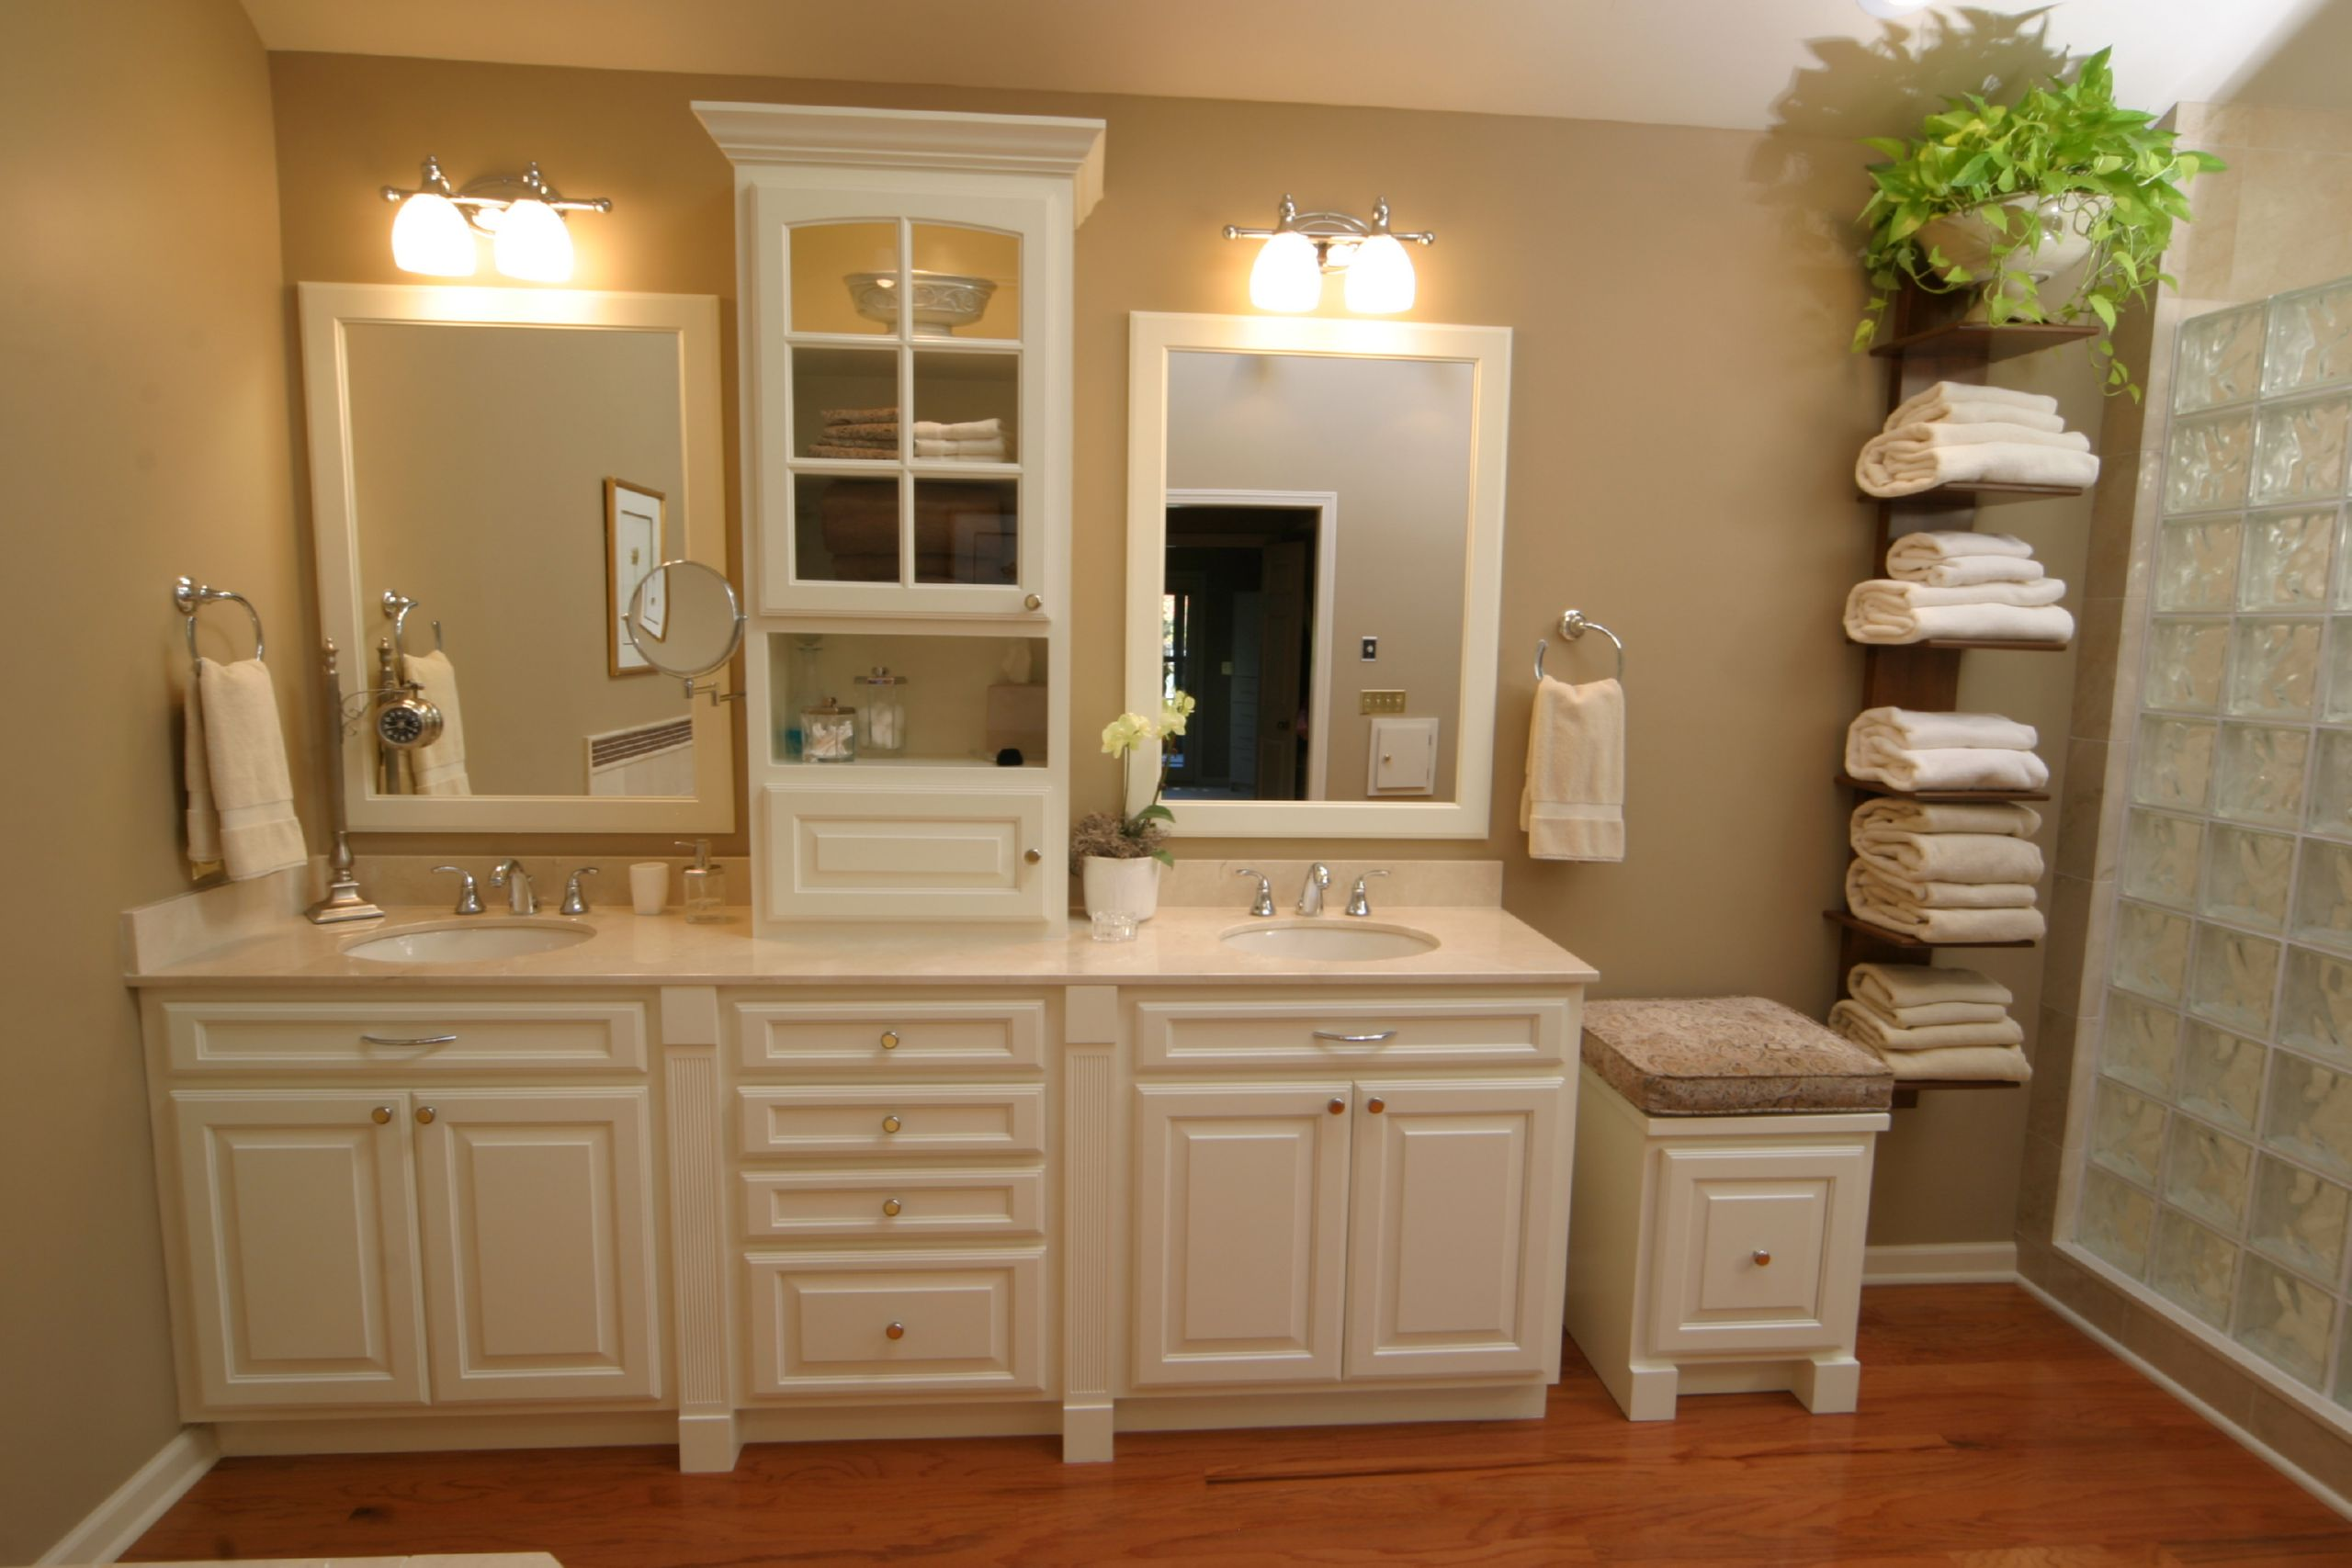 Bathroom remodeling tips njw construction for Bathroom remodel pics